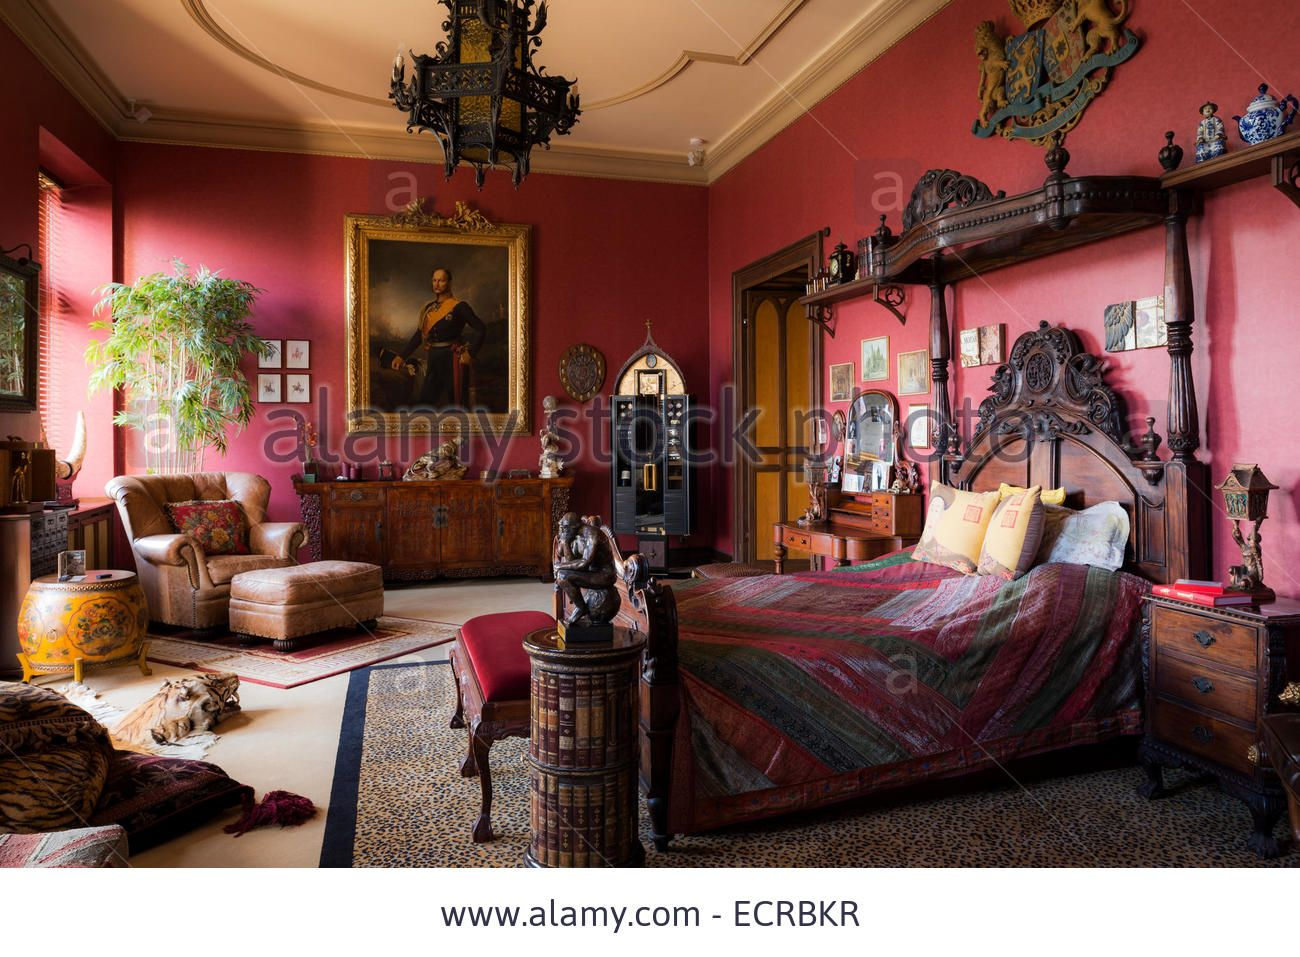 Download this stock image: Ornate carved bed with coronet in large red bedroom with leopard print carpet, wall  mounted coat of arms and antique furniture - ECRBKR from Alamy's library of millions of high resolution stock photos, illustrations and vectors.